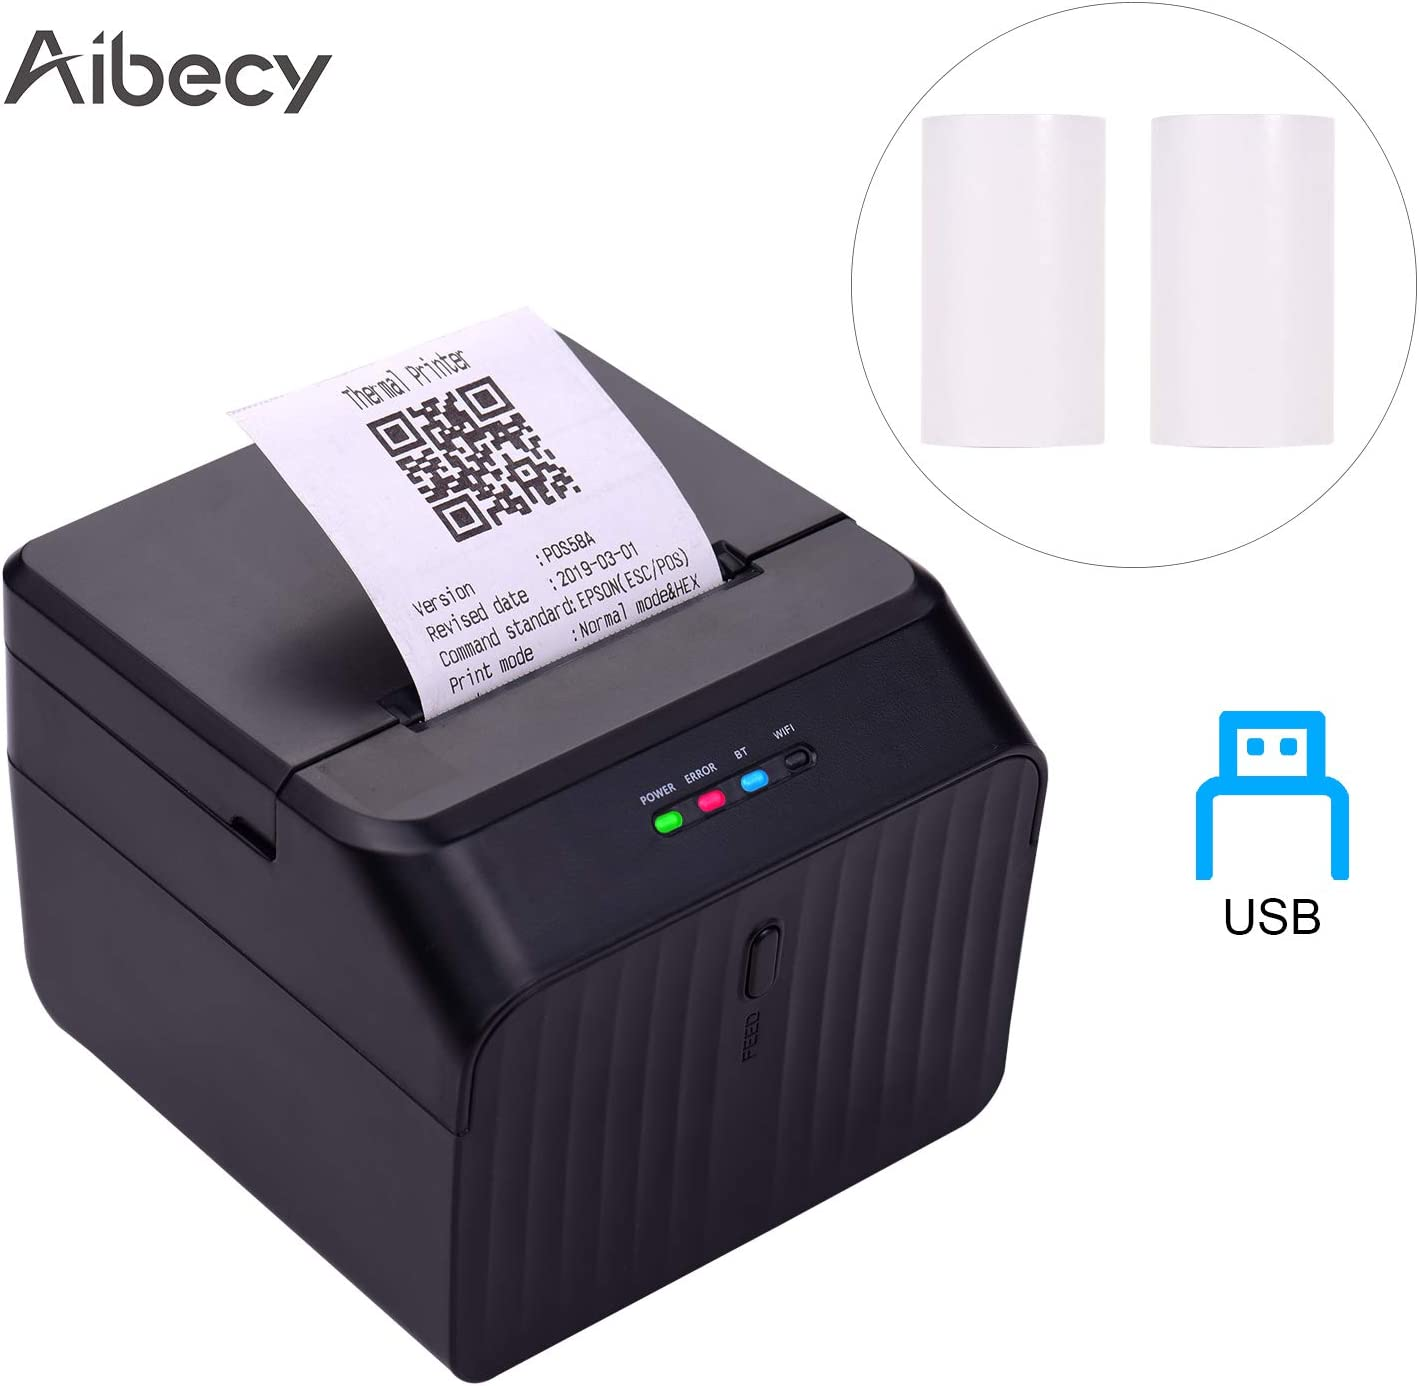 Aibecy Desktop 58mm Thermal Receipt Printer Wired Barcode Printer USB Connection with 2 Rolls Paper Inside Support ESC/POS Command Compatible with Windows Android iOS for Supermarket Store Restaurant